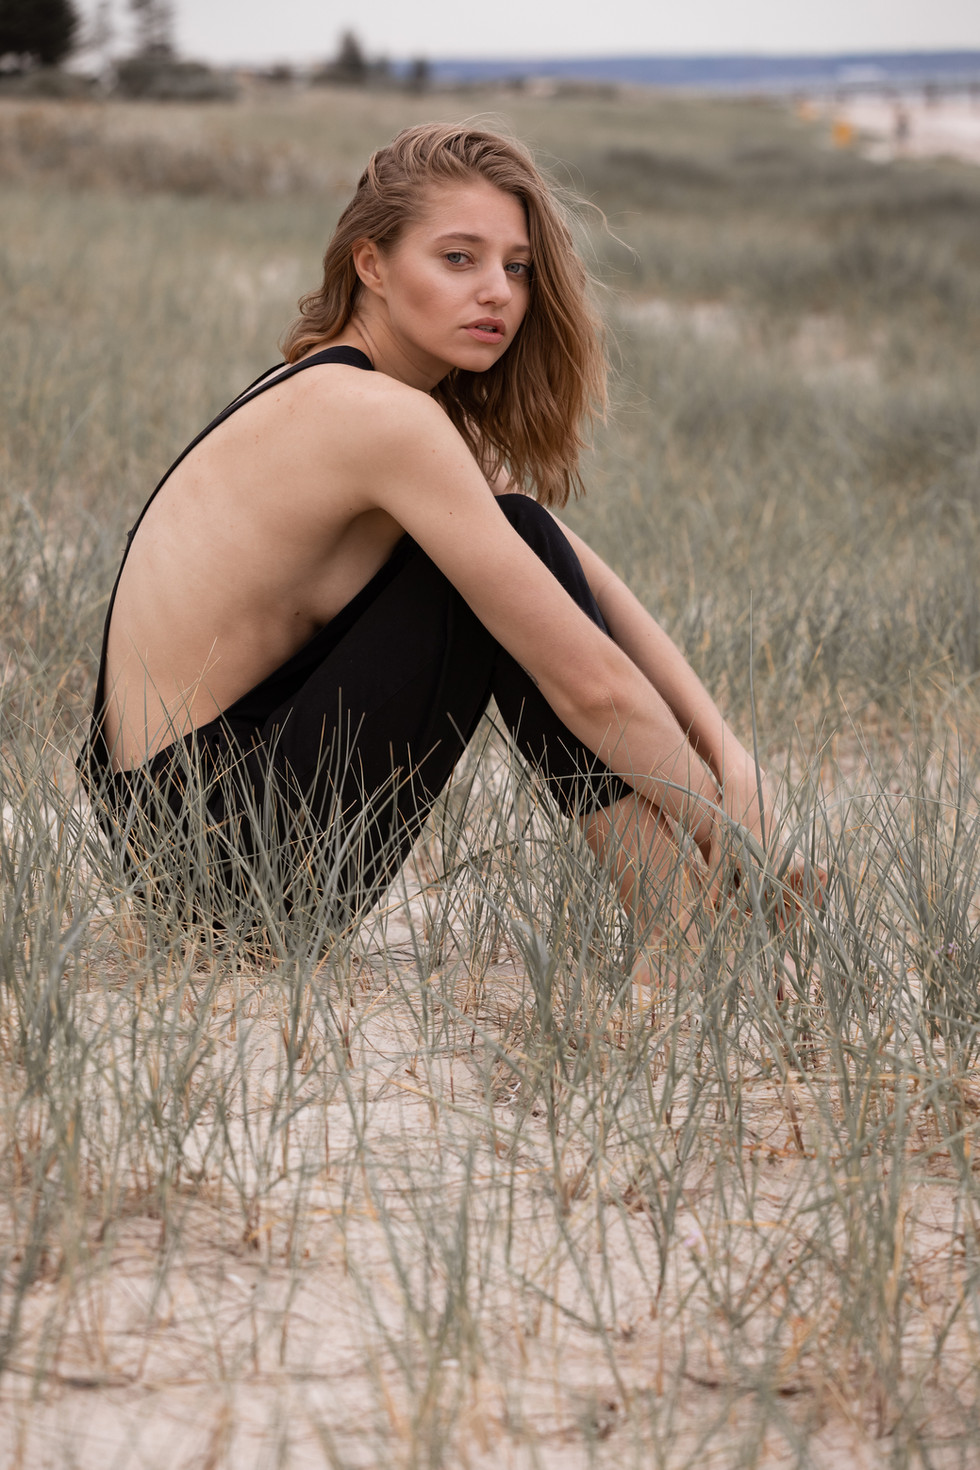 Kate_by_CoogeePhotography-941854.jpg